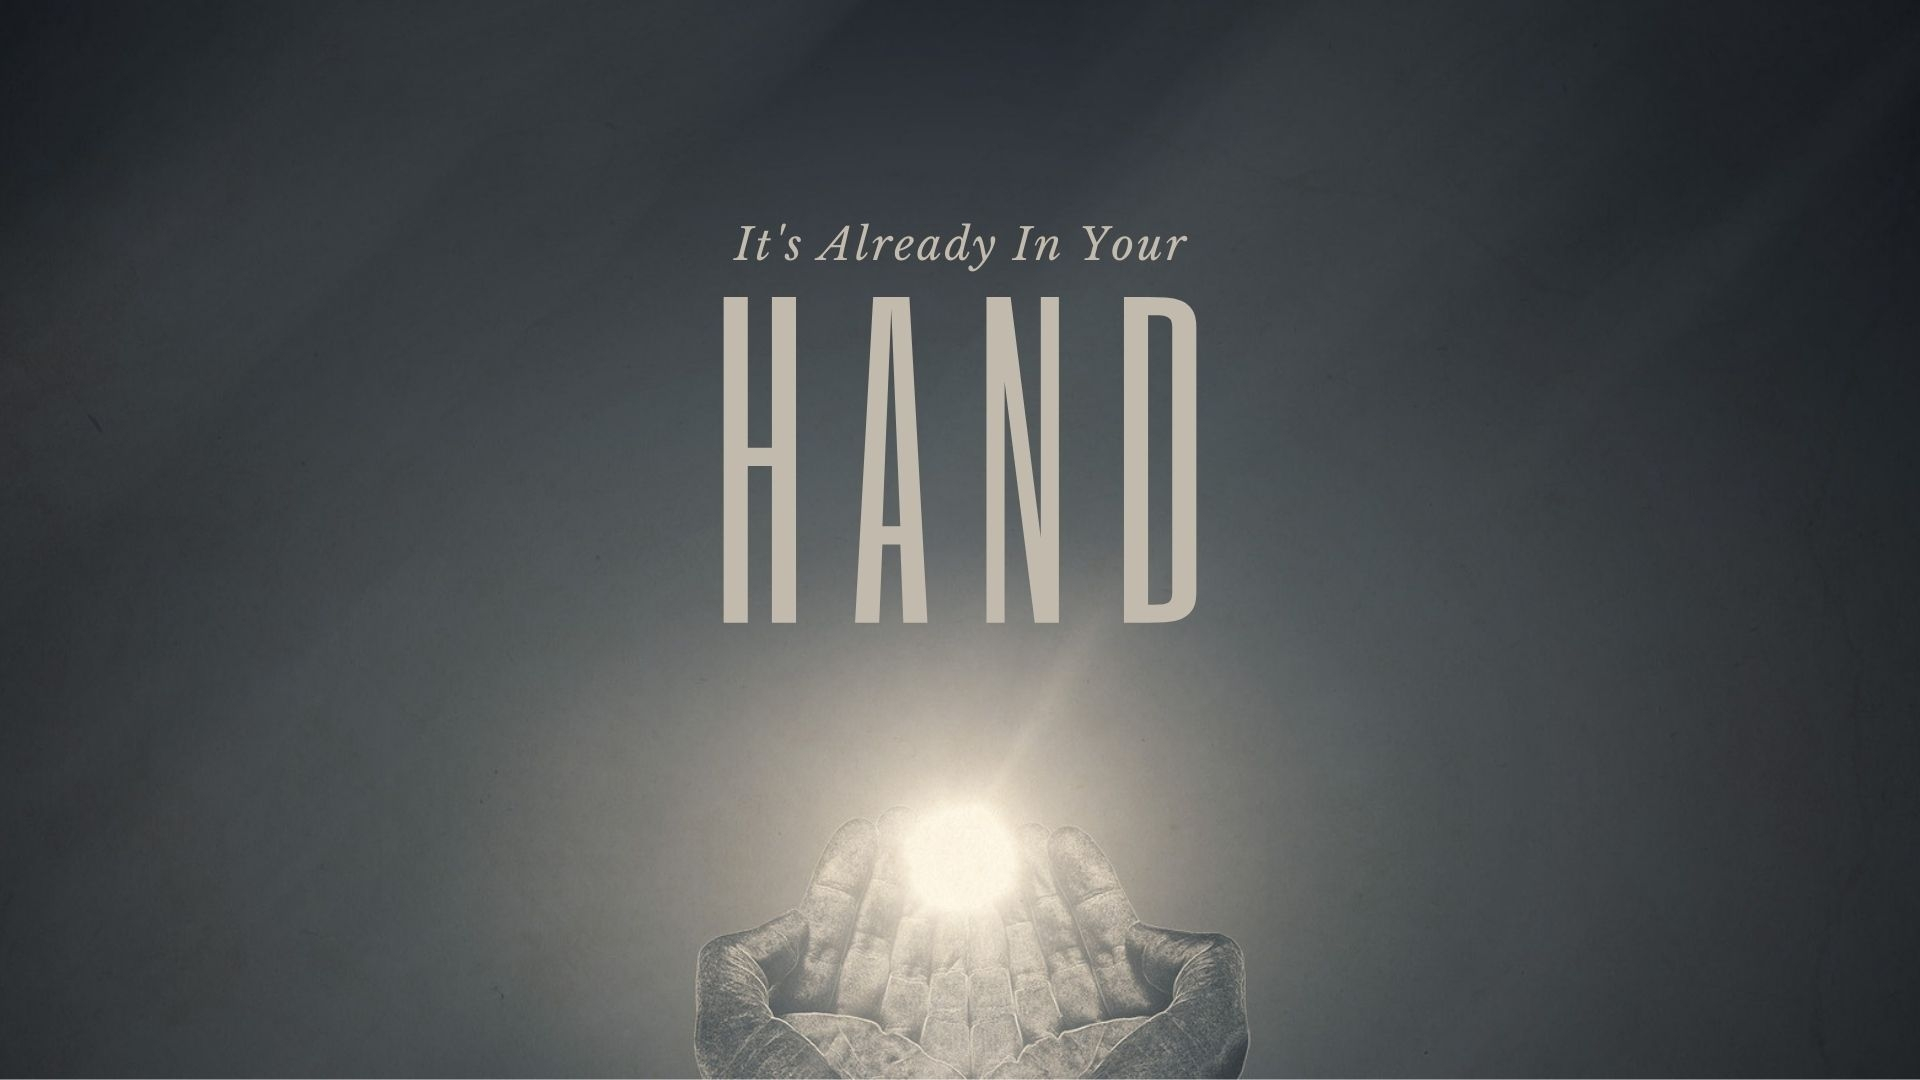 Thursday September 17, 2020 It's Already In Your Hand - Pastor Anthony Cox